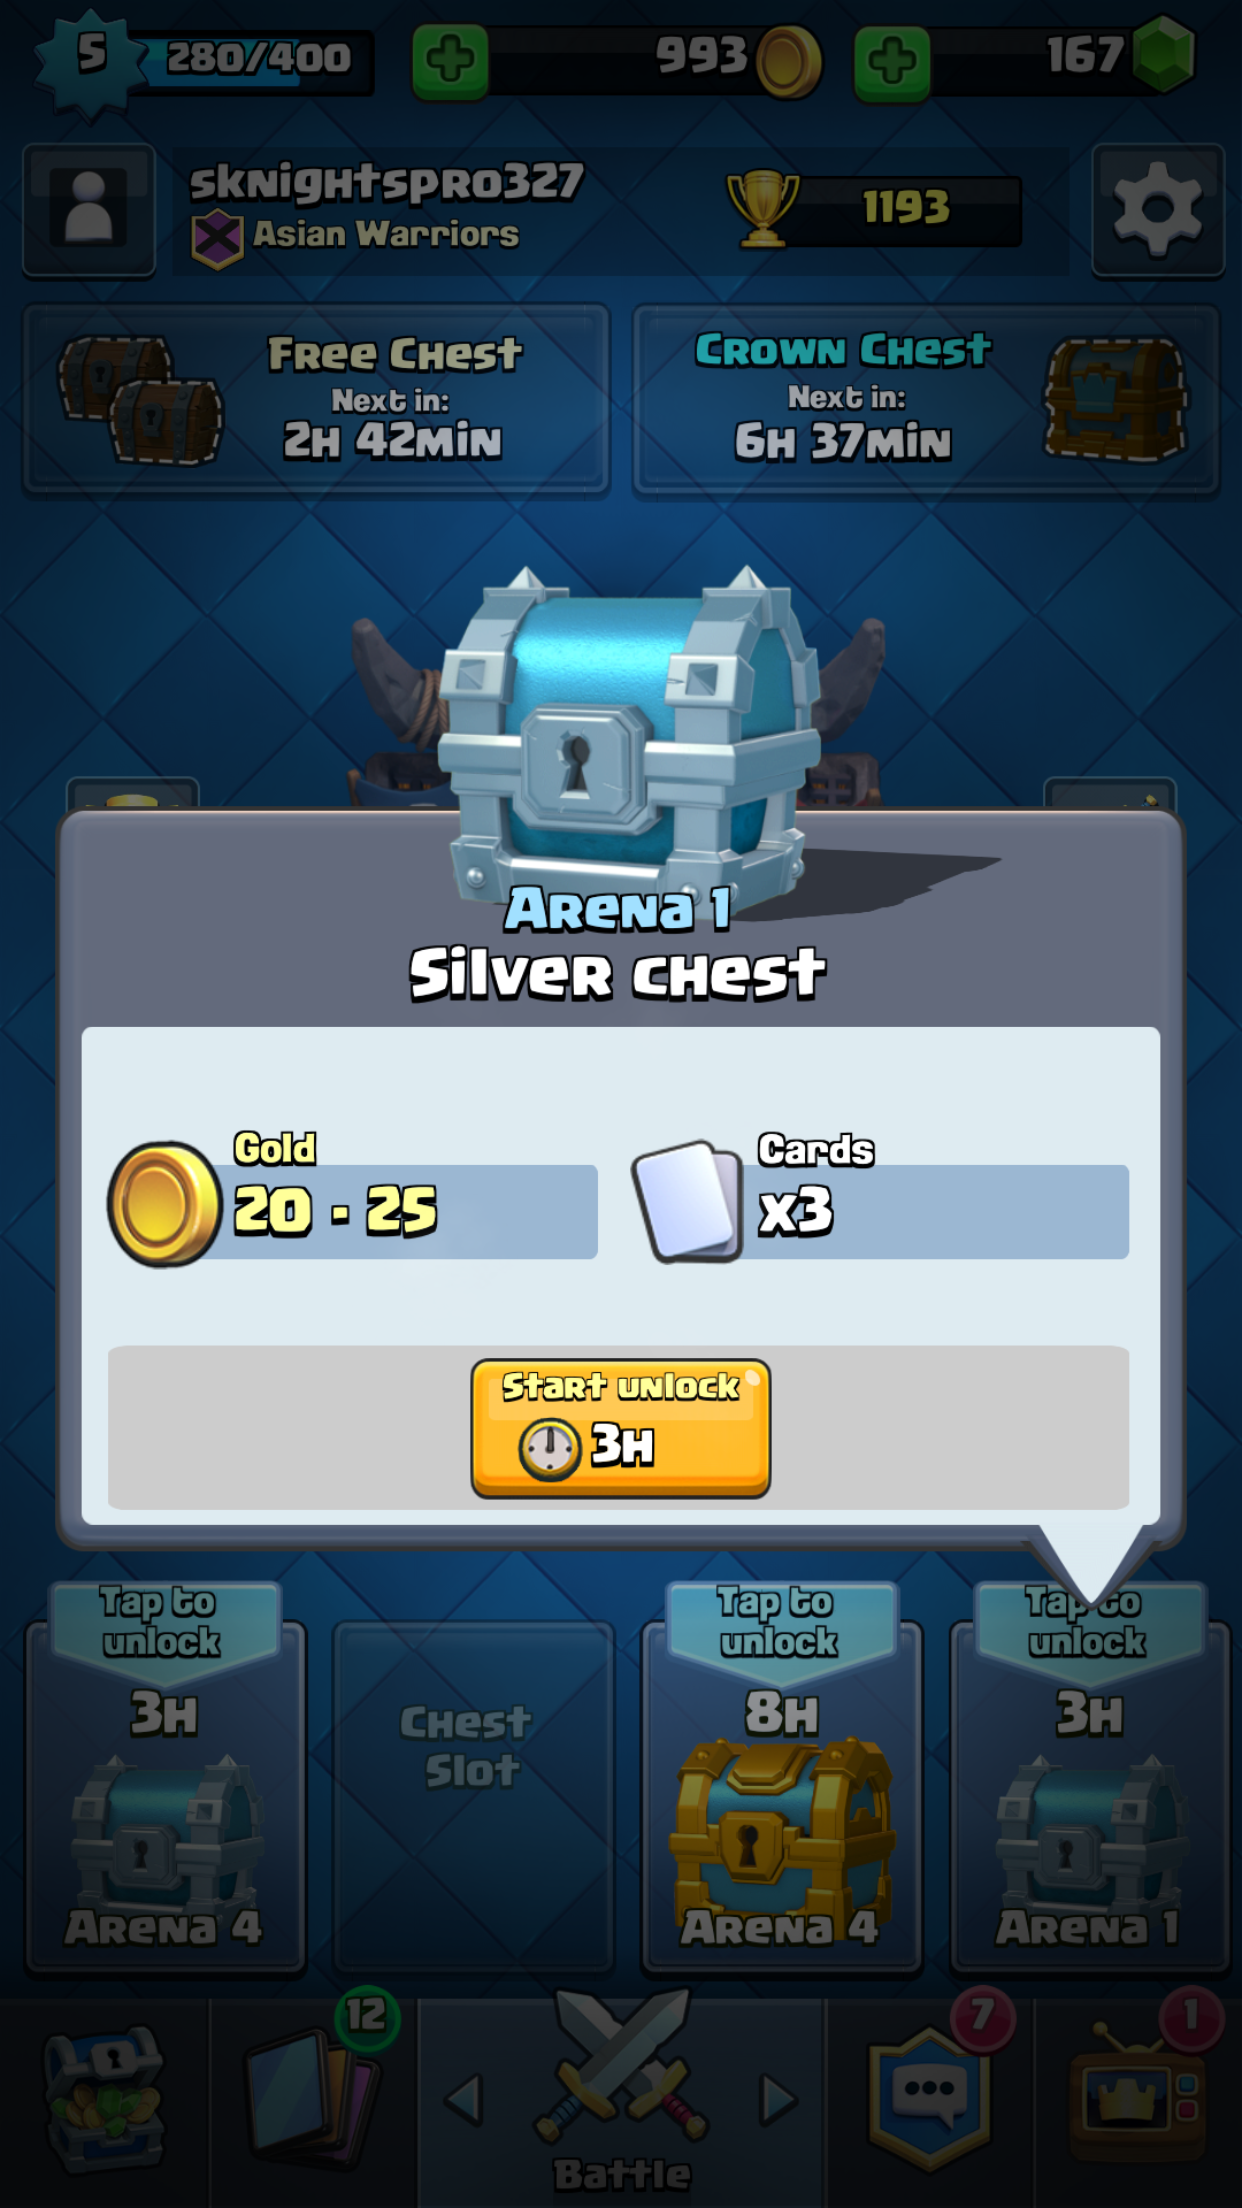 A 3 hour silver chest you get after training